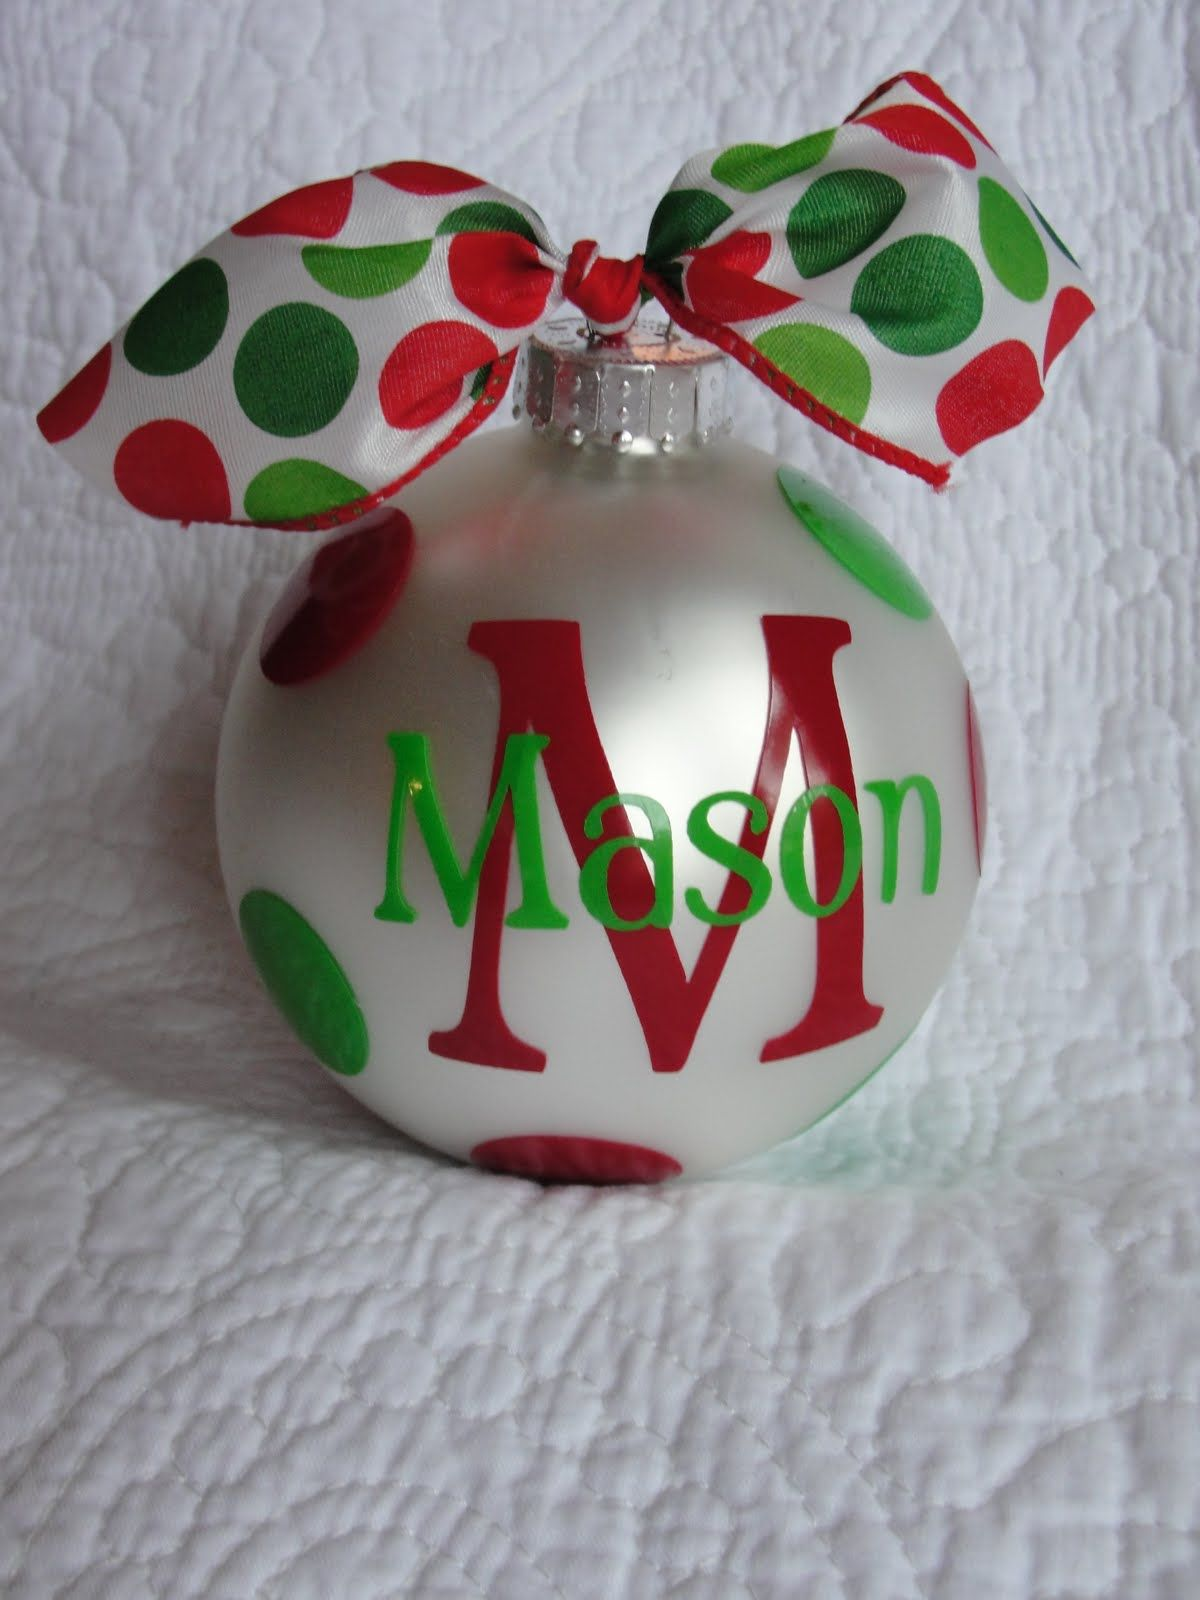 cute personalized ornament made with cricut and vinyl